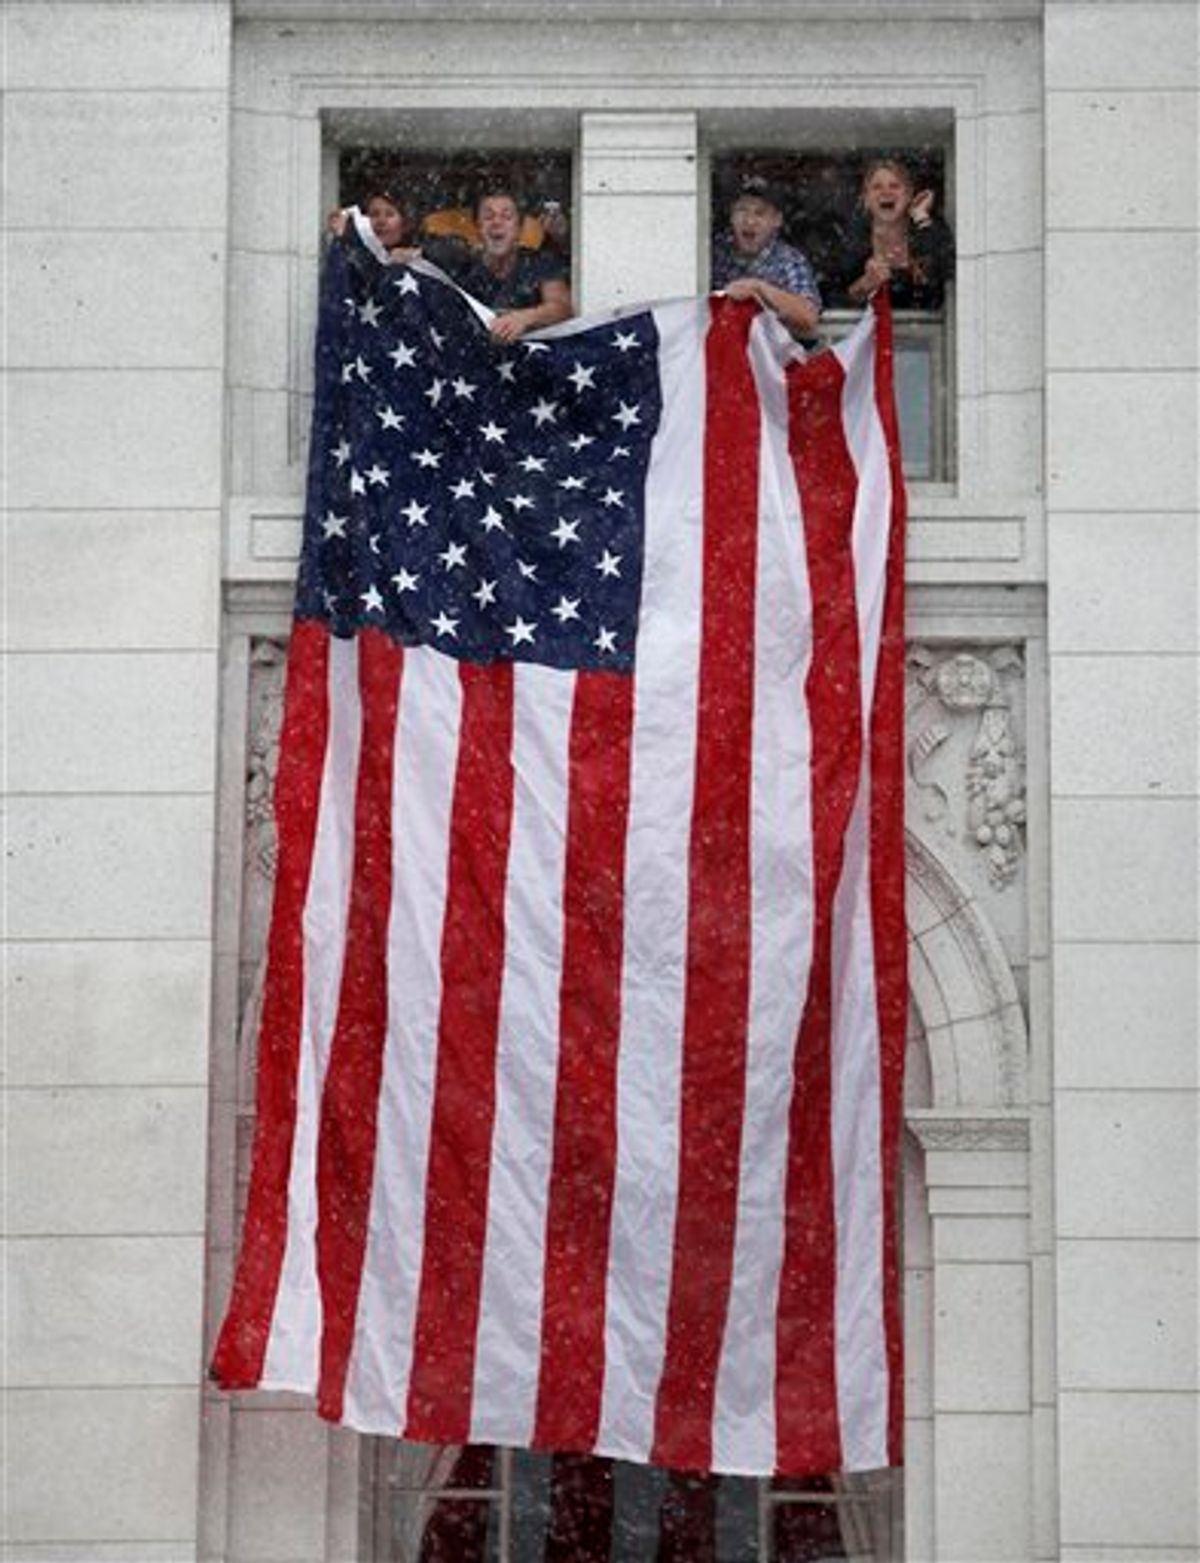 Rally supporters hang an American flag from fourth floor windows of the Wisconsin State Capitol Building as thousands of opponents of Governor Scott Walker's budget repair bill gather for ongoing protests inside and outside the State Capitol Building in Madison, Wisconsin Saturday, February 26, 2011. (AP Photos/Wisconsin State Journal, John Hart) (AP)